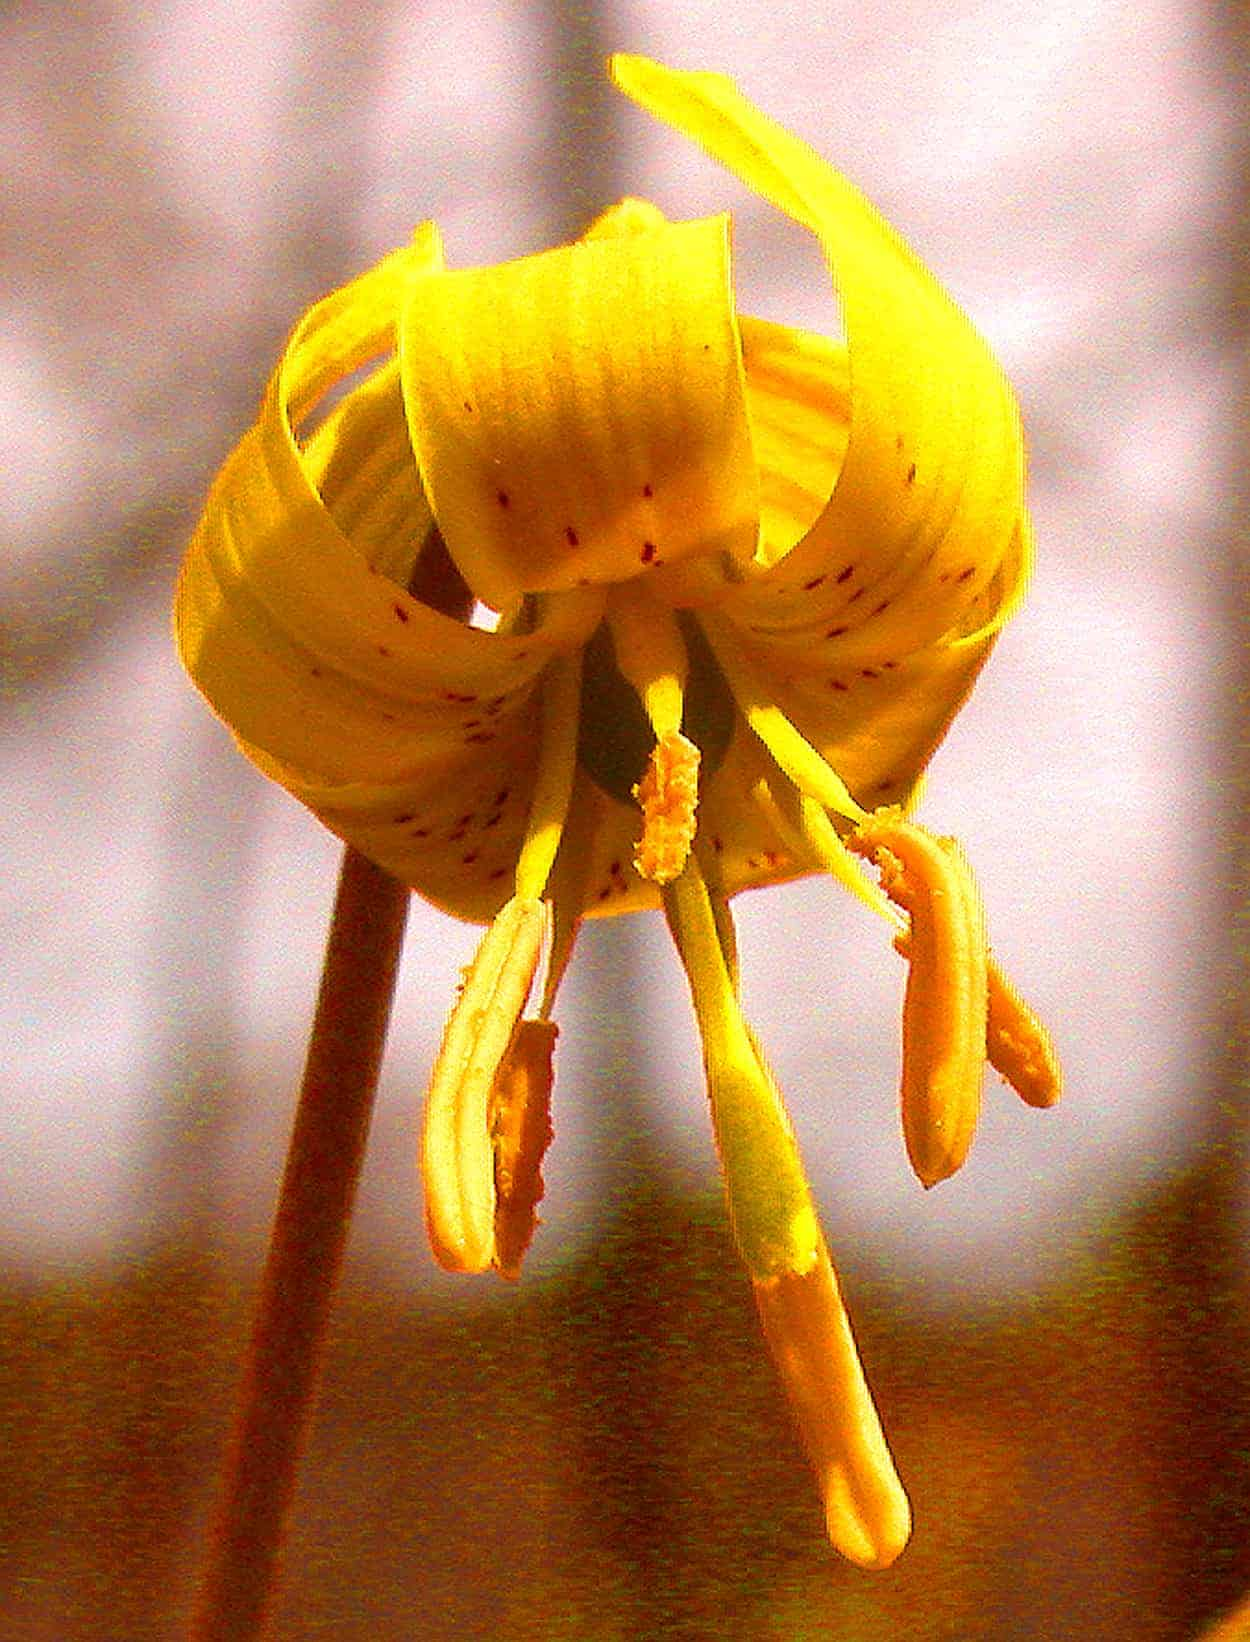 Ephemeral Trout lily folds golden wings on dense forest floors in the early Spring. Photo by Thom Smith